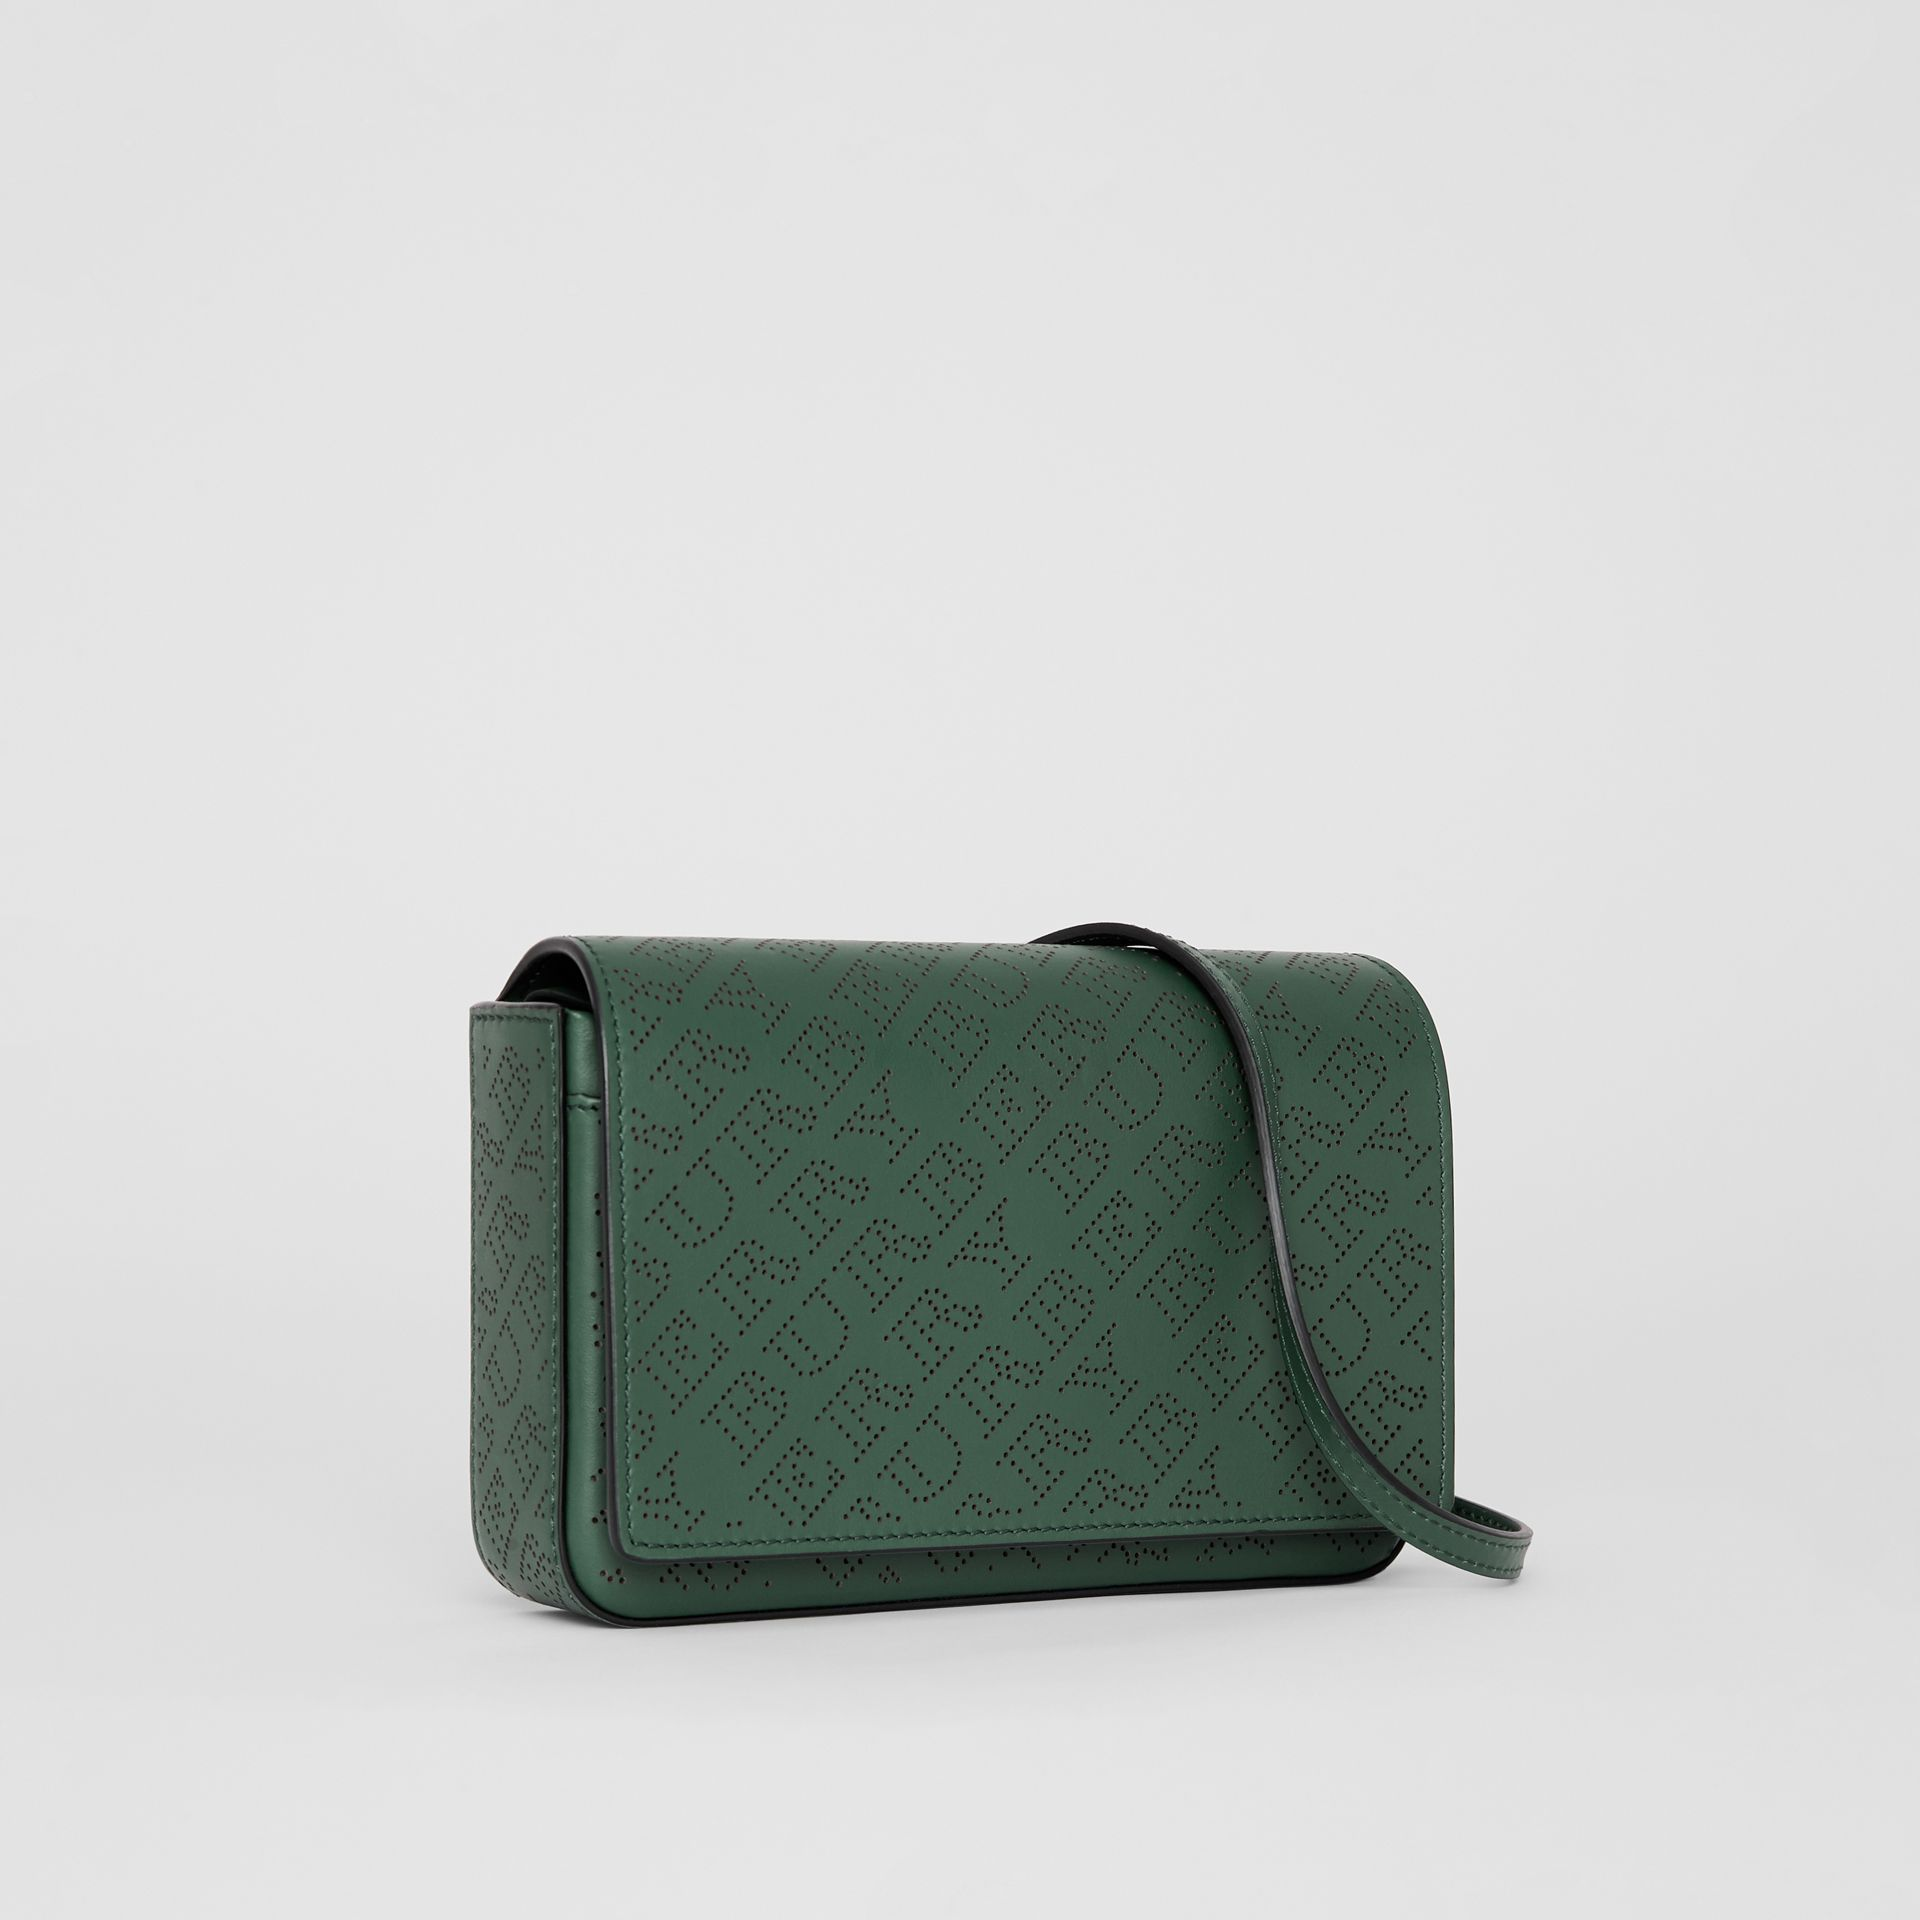 Perforated Logo Leather Wallet with Detachable Strap in Vintage Green - Women | Burberry - gallery image 4